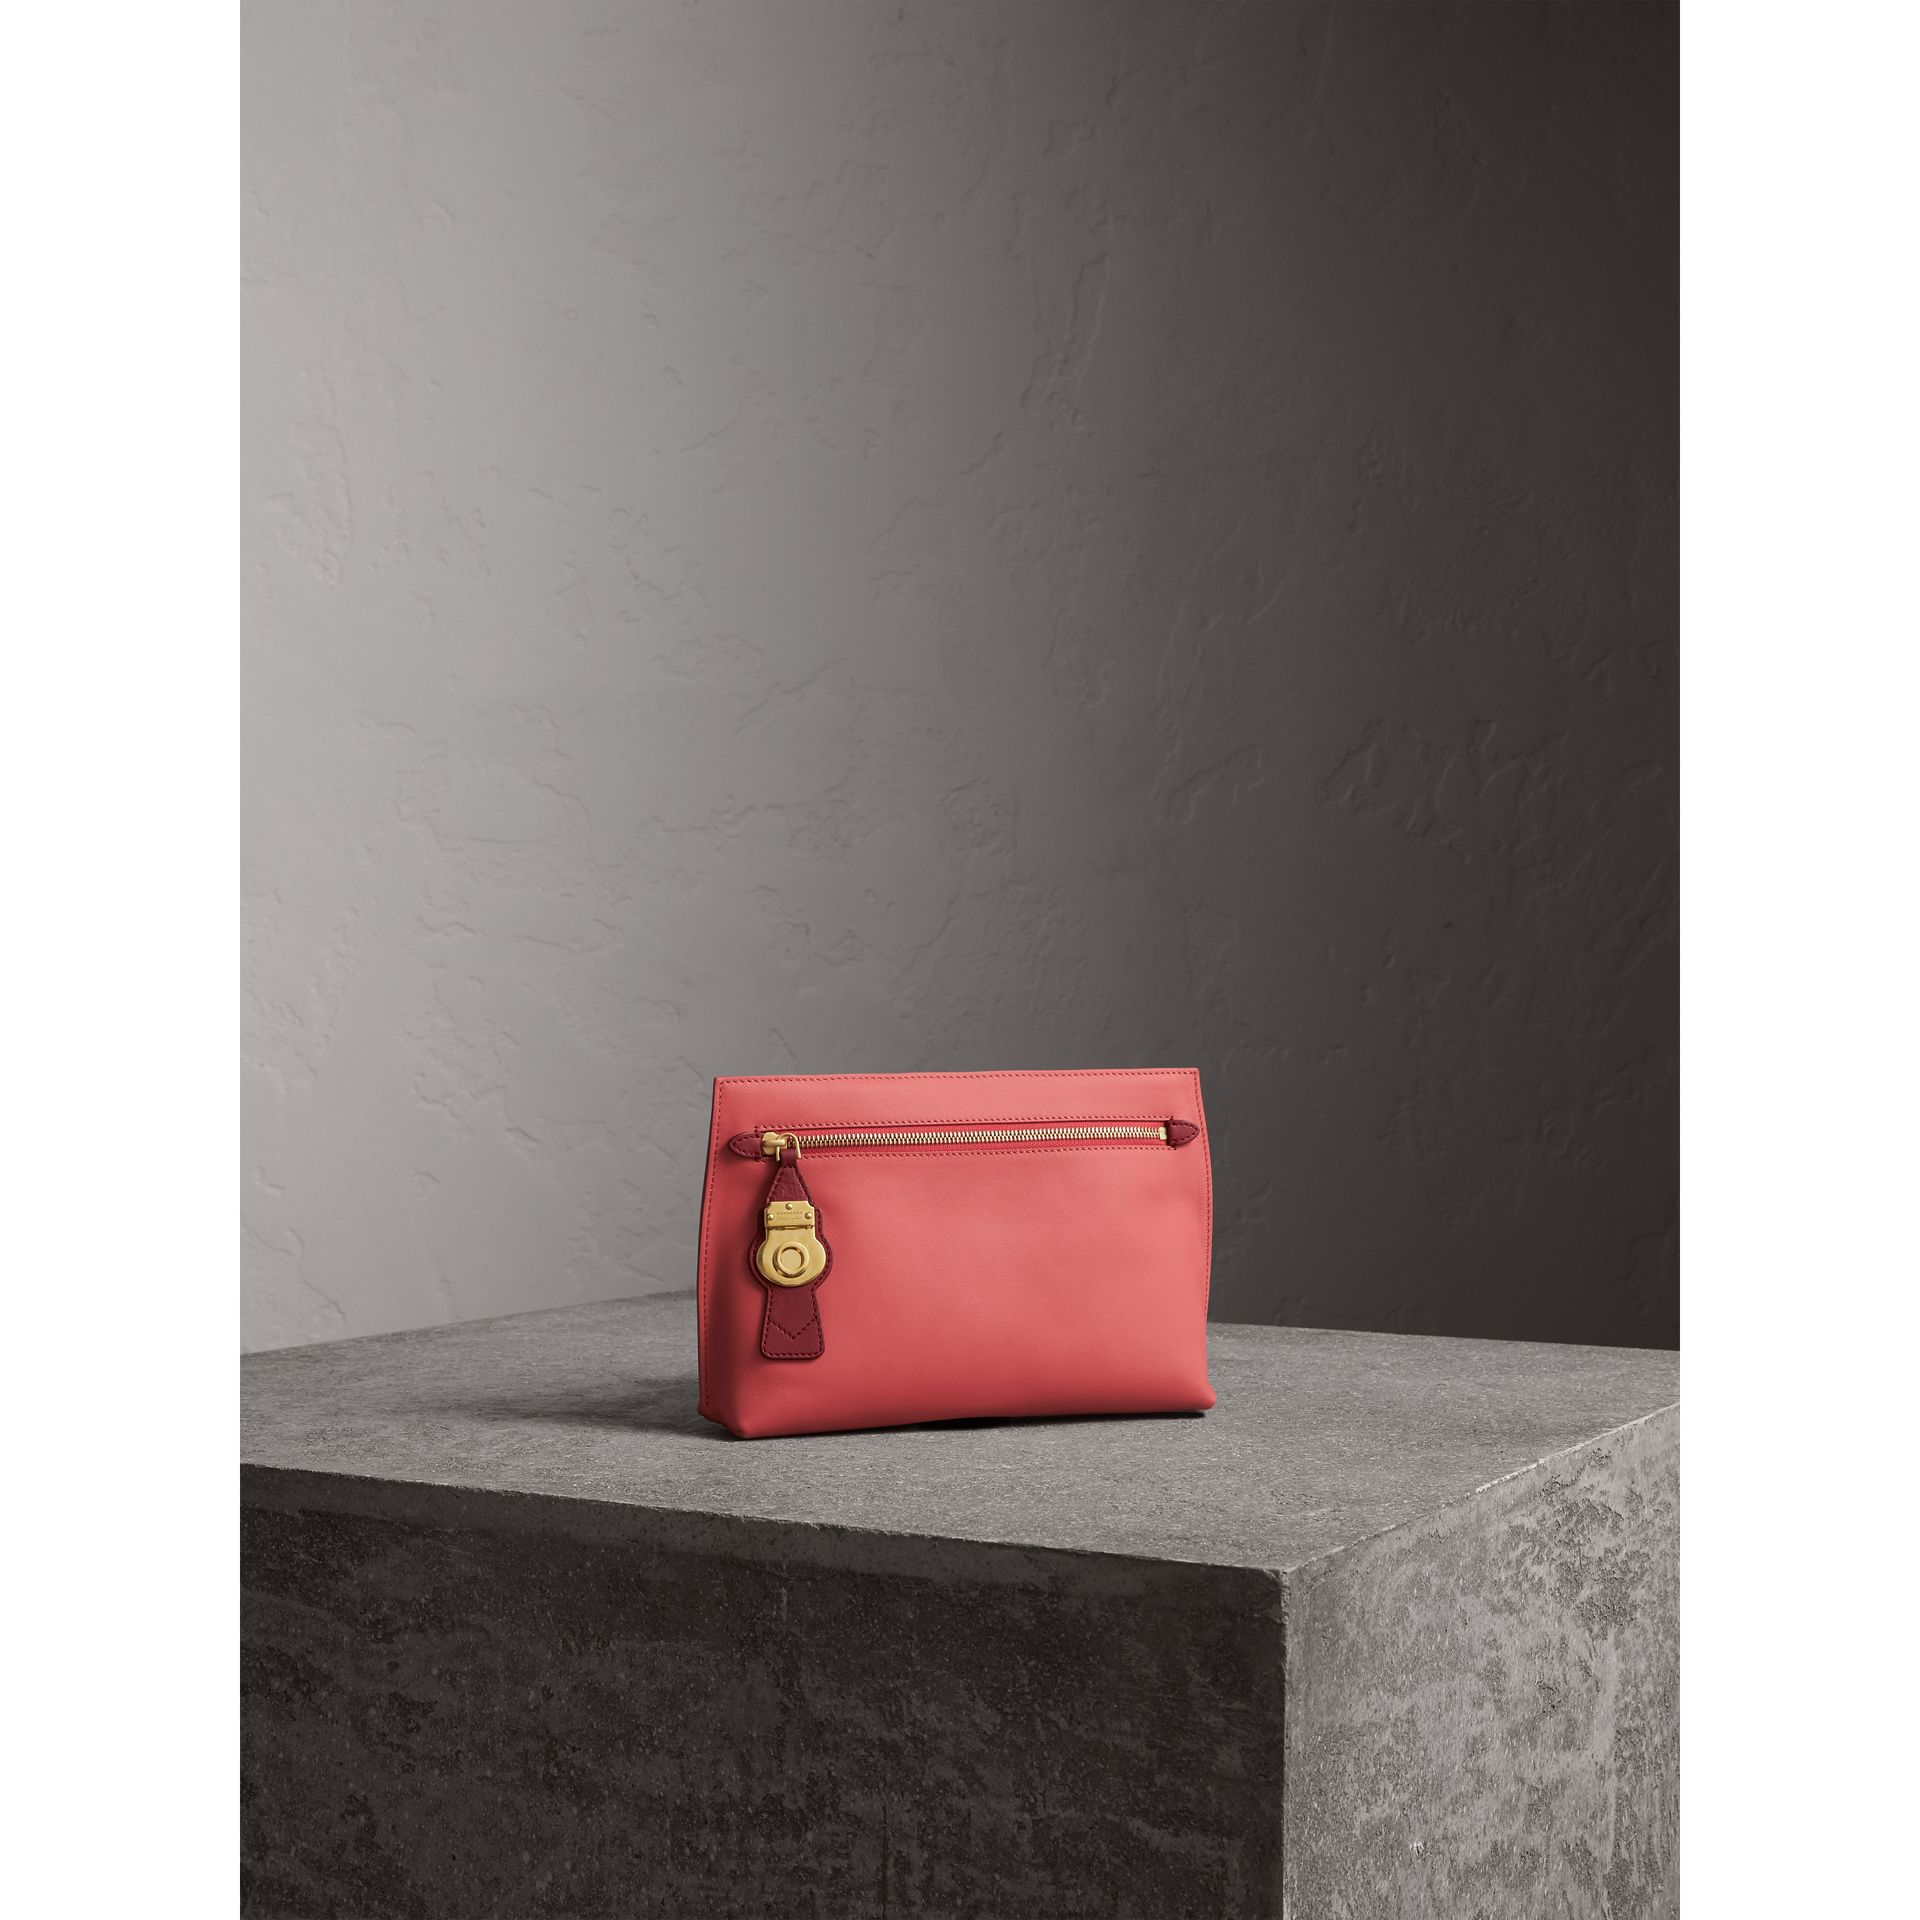 Pochette wristlet en cuir trench bicolore (Rose Blossom/rouge Antique) - Femme | Burberry - photo de la galerie 6